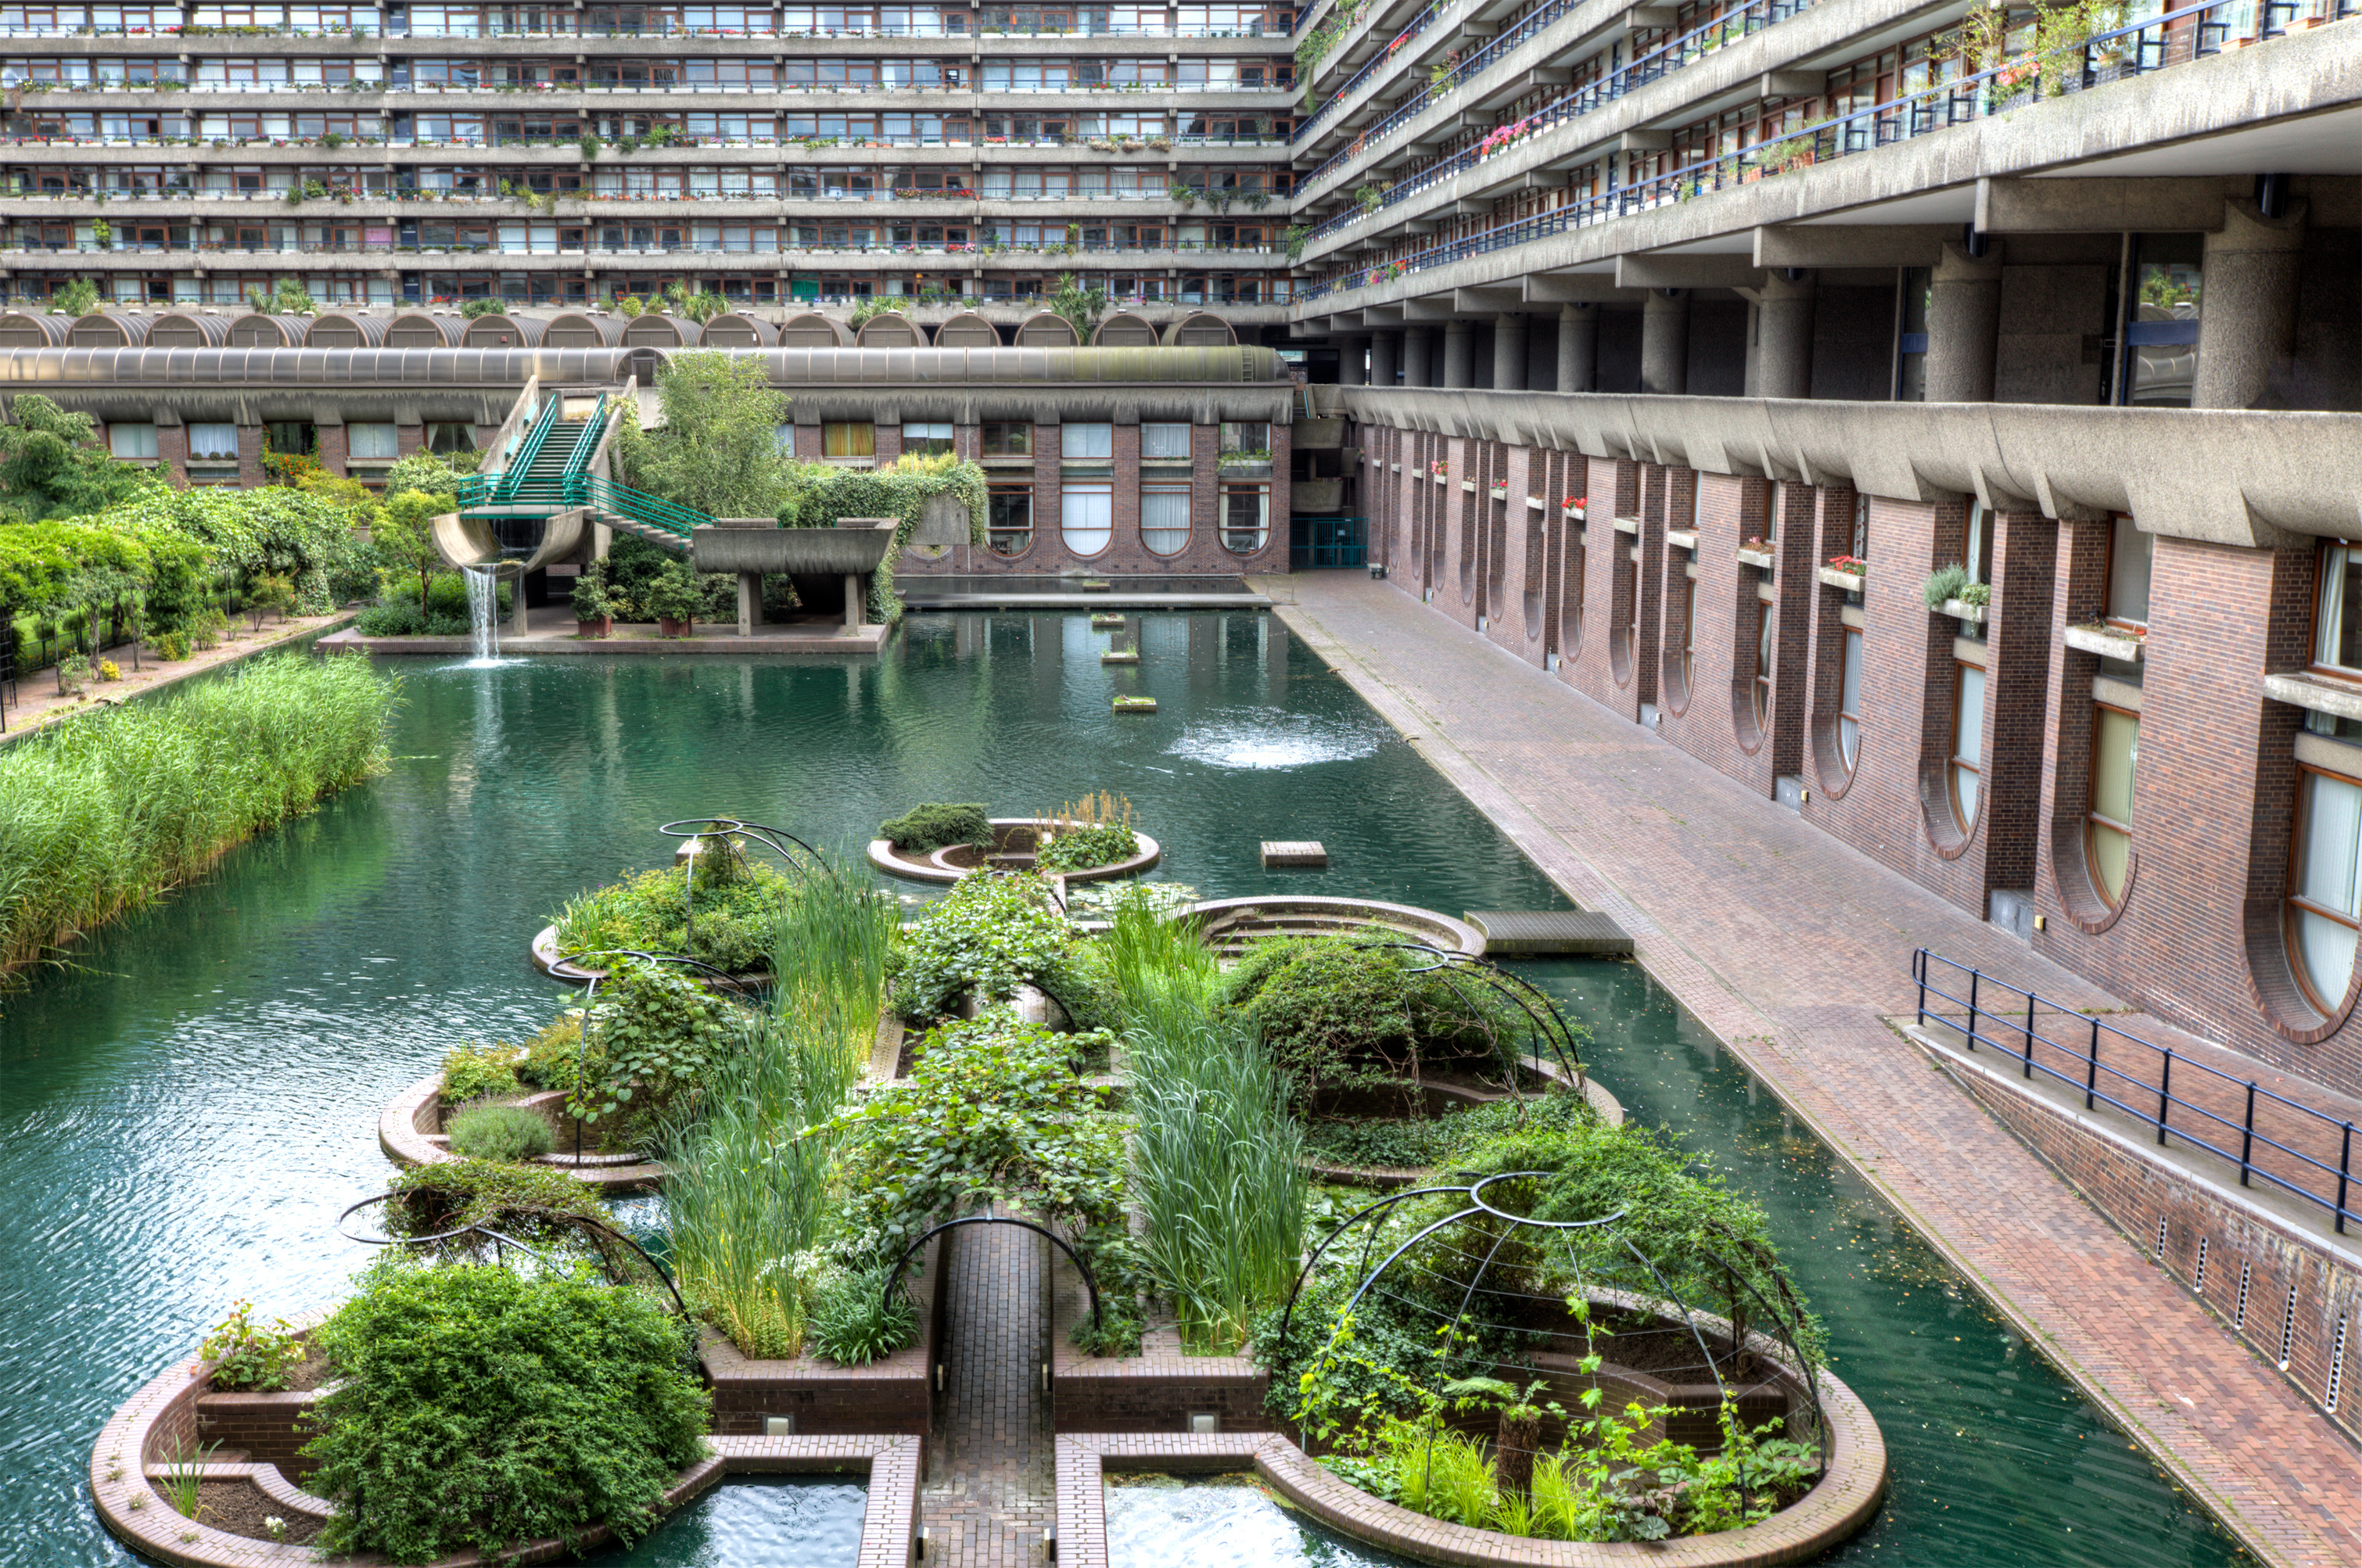 The Barbican center london